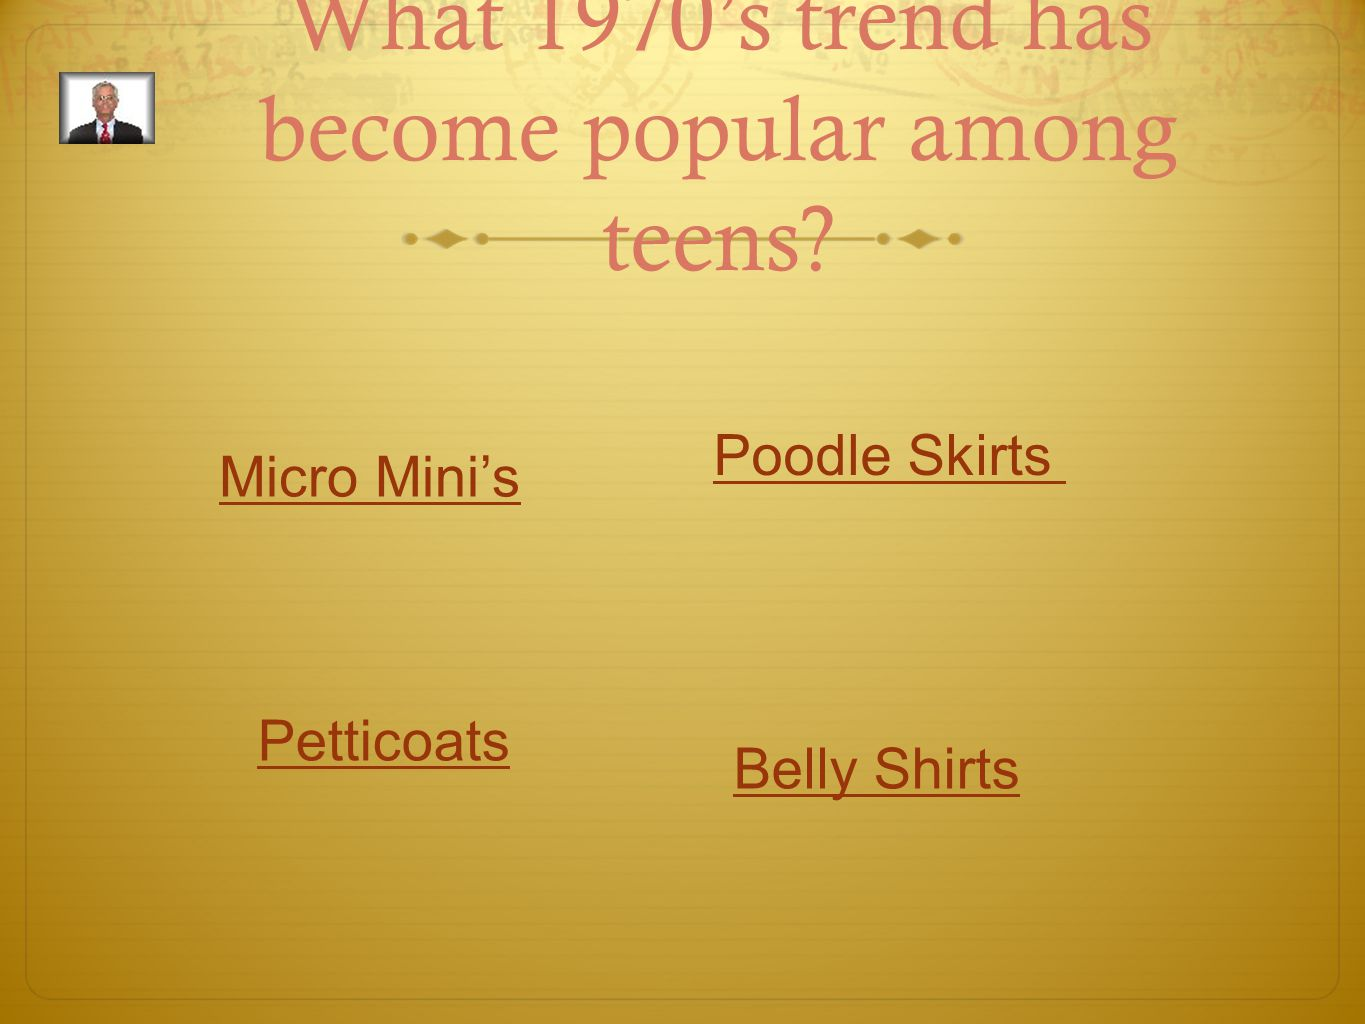 What 1970's trend has become popular among teens? Micro Mini's Poodle Skirts Petticoats Belly Shirts